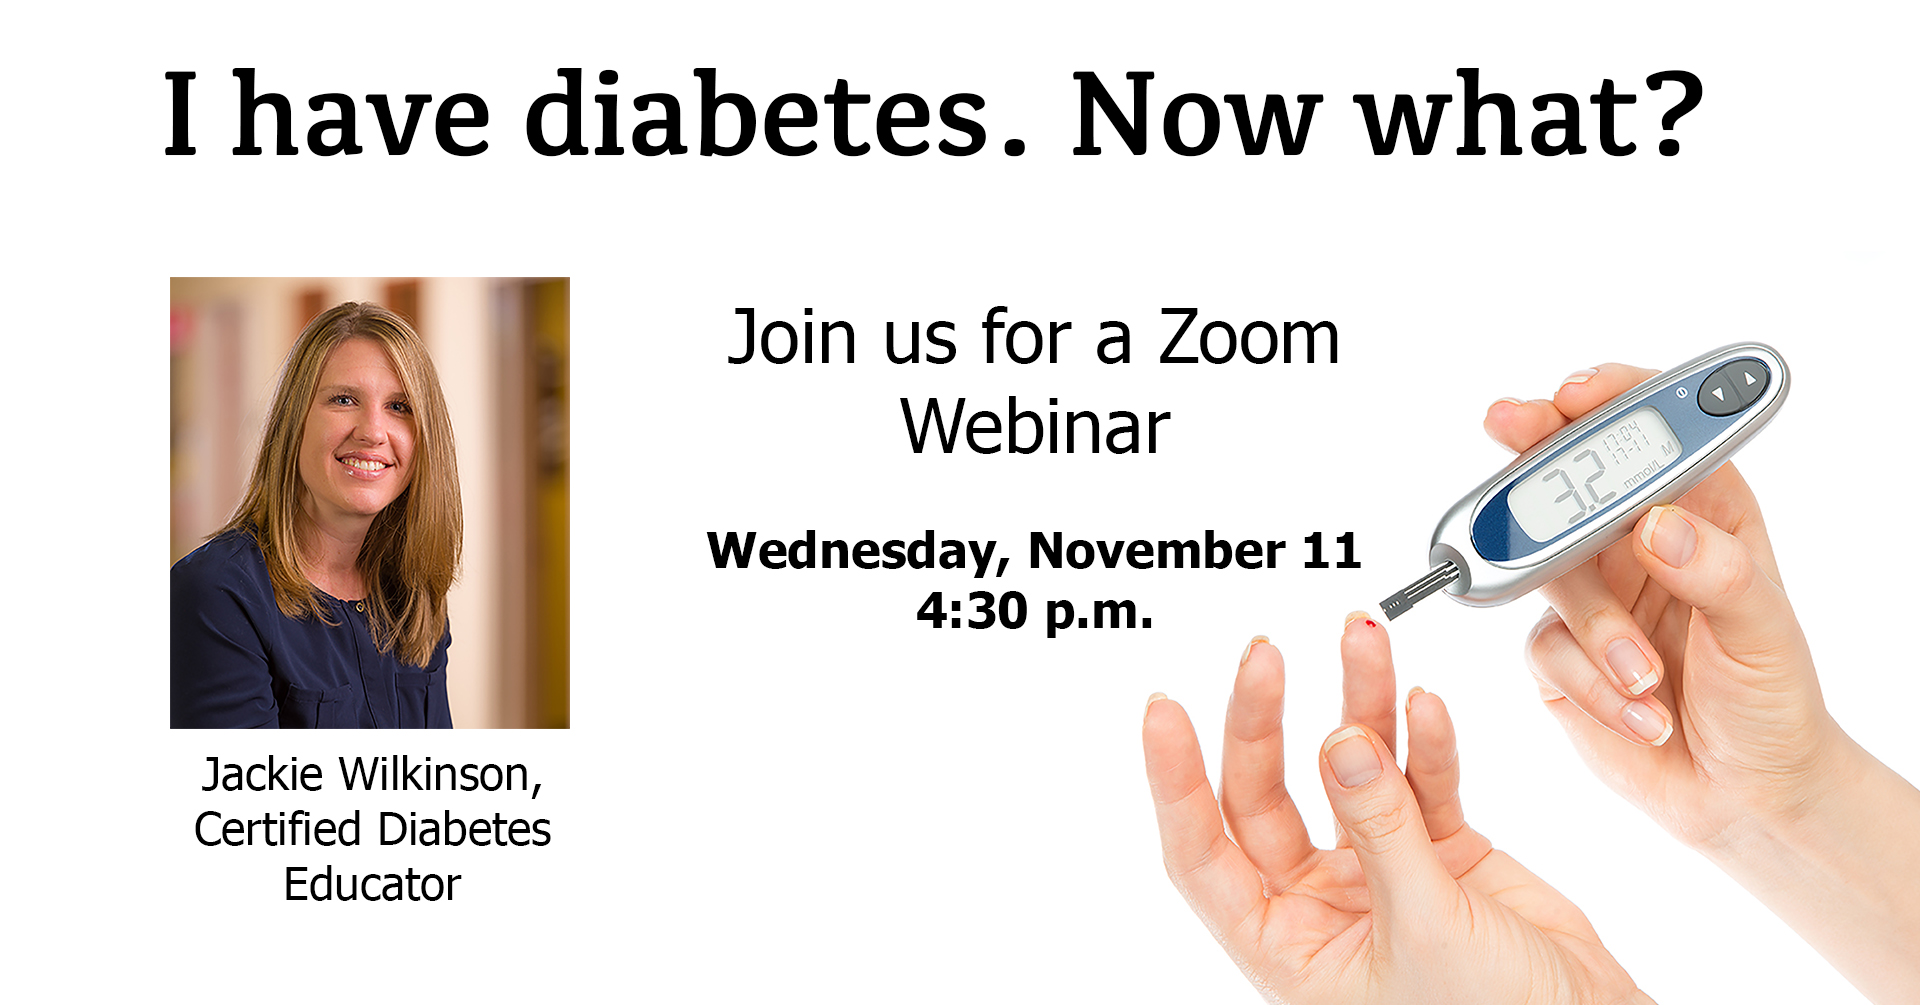 I have diabetes. Now what? Diabetes Education Webinar